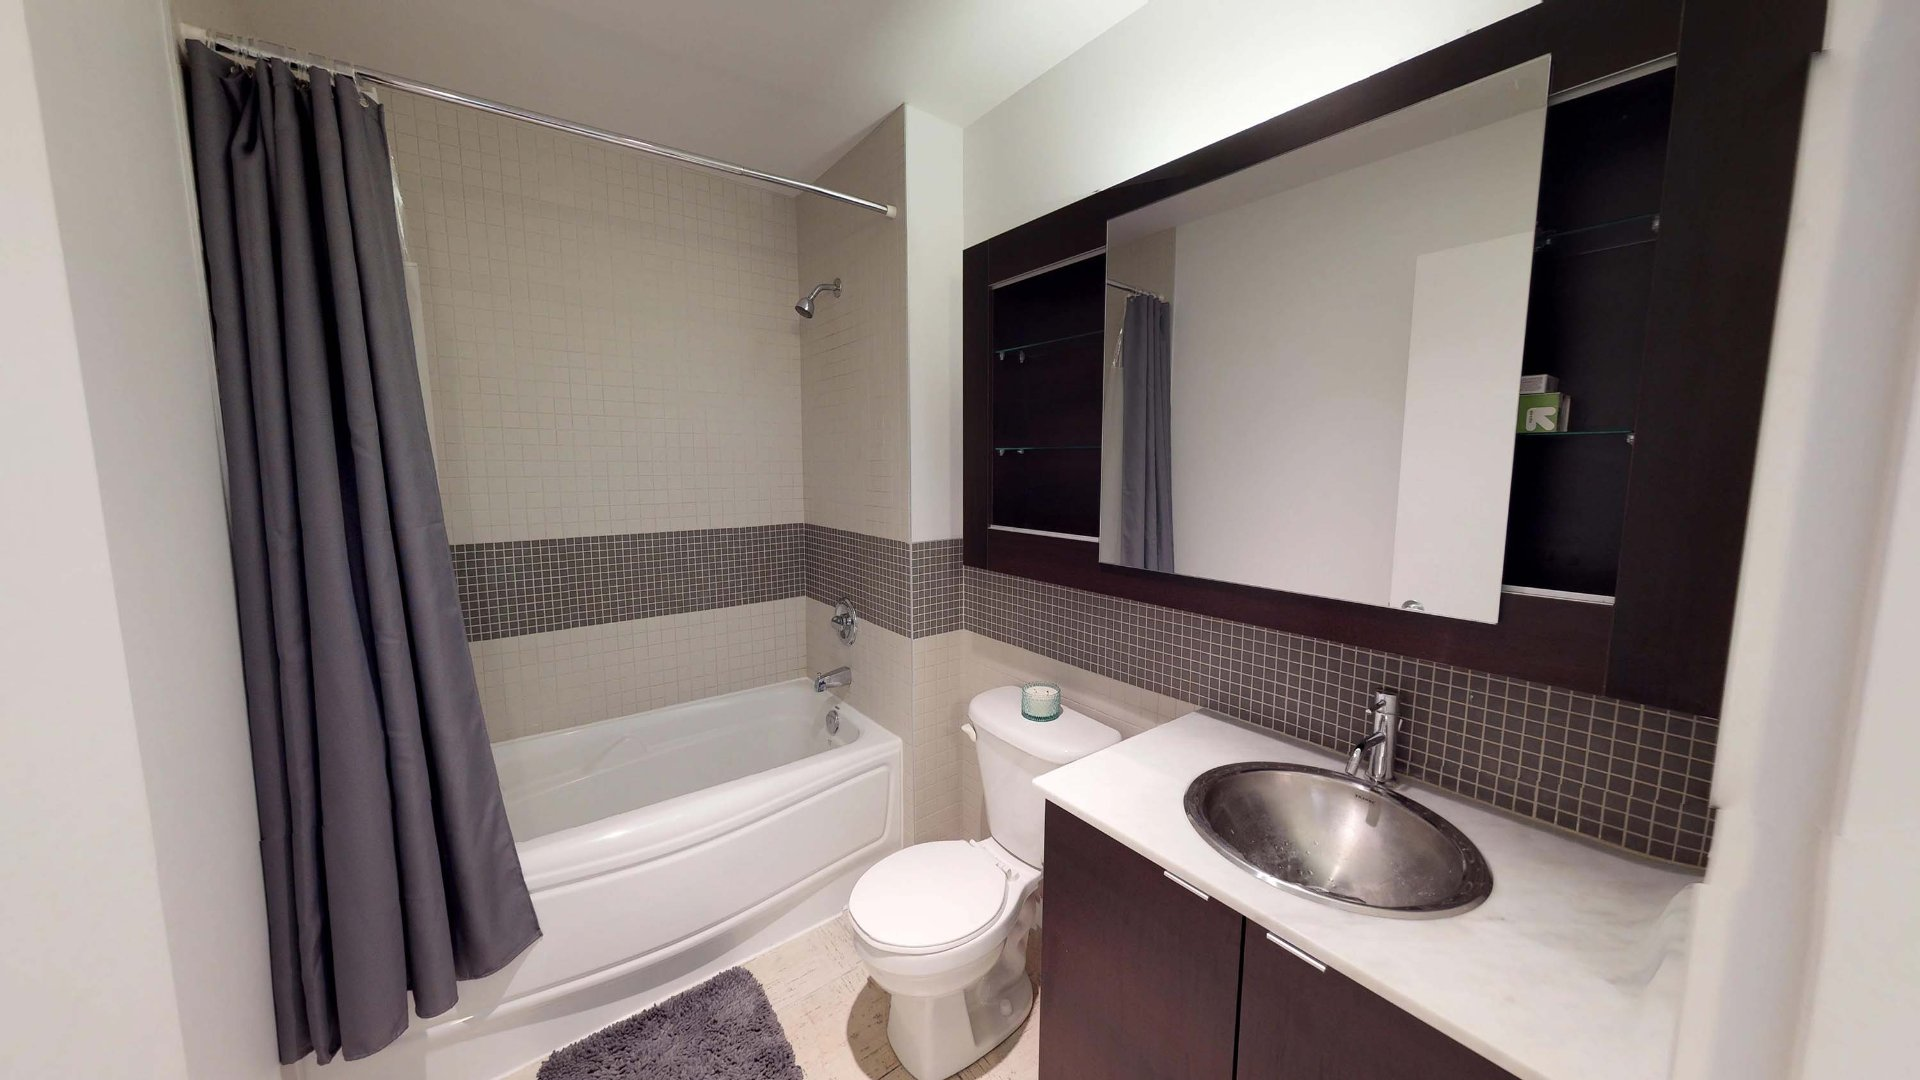 Lapeyre Salle De Bain Vasque ~ apartment for sale ville marie montreal buy apartment ville marie